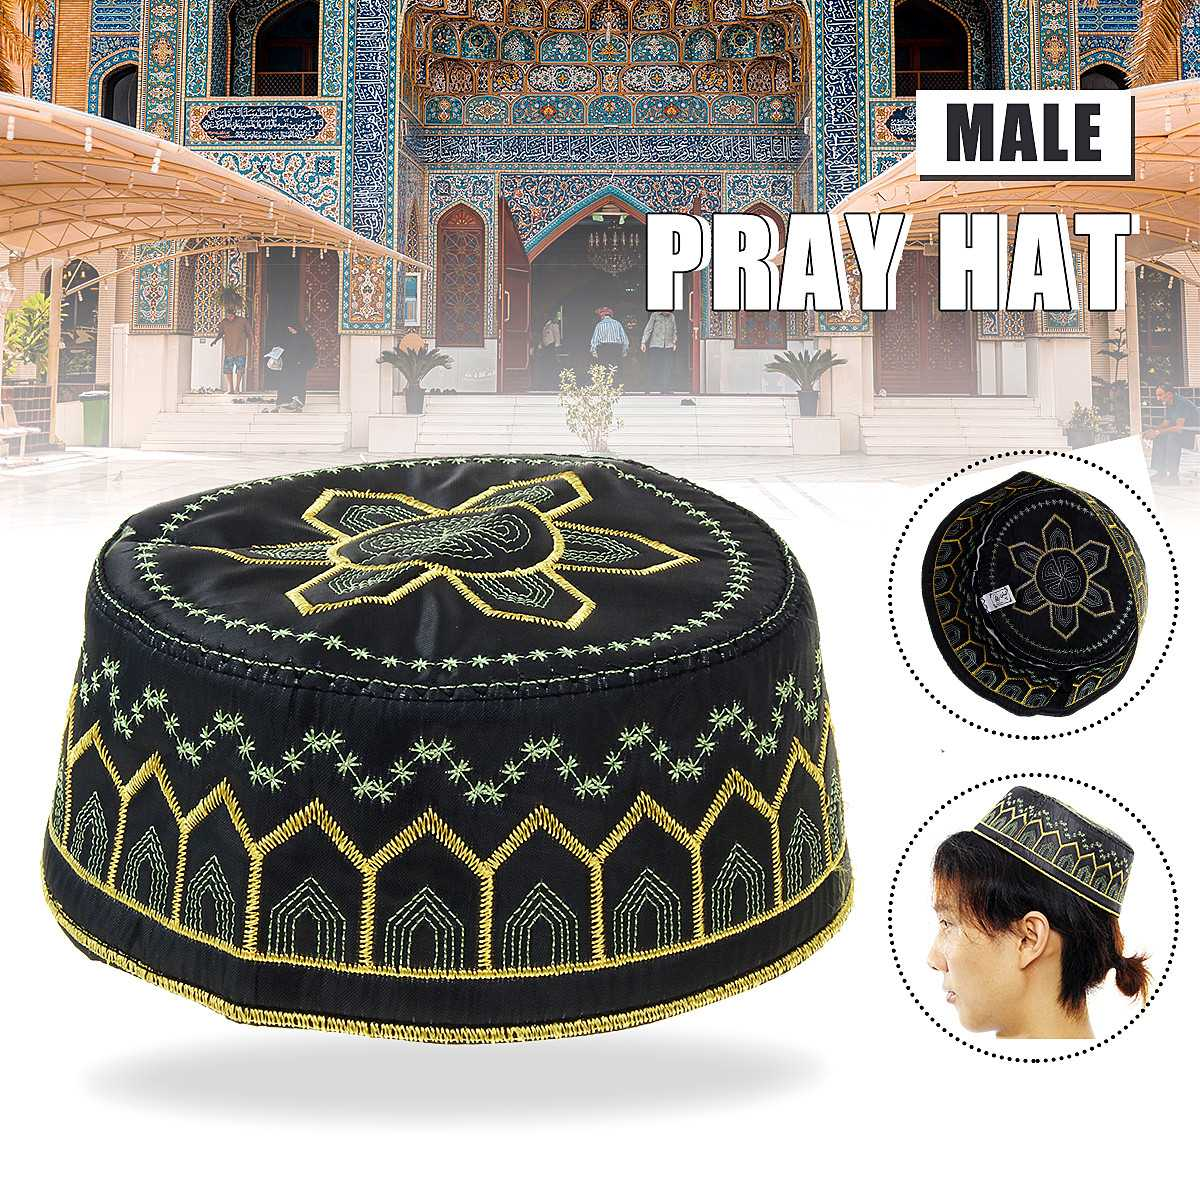 US $1 49 39% OFF|New Fashion Muslim Islamic Prayer Hat Hats Caps Indian Hat  Topi Kufi Round Cap Eid Ramadan Pray For Men Muslim Dropshipping 2019-in